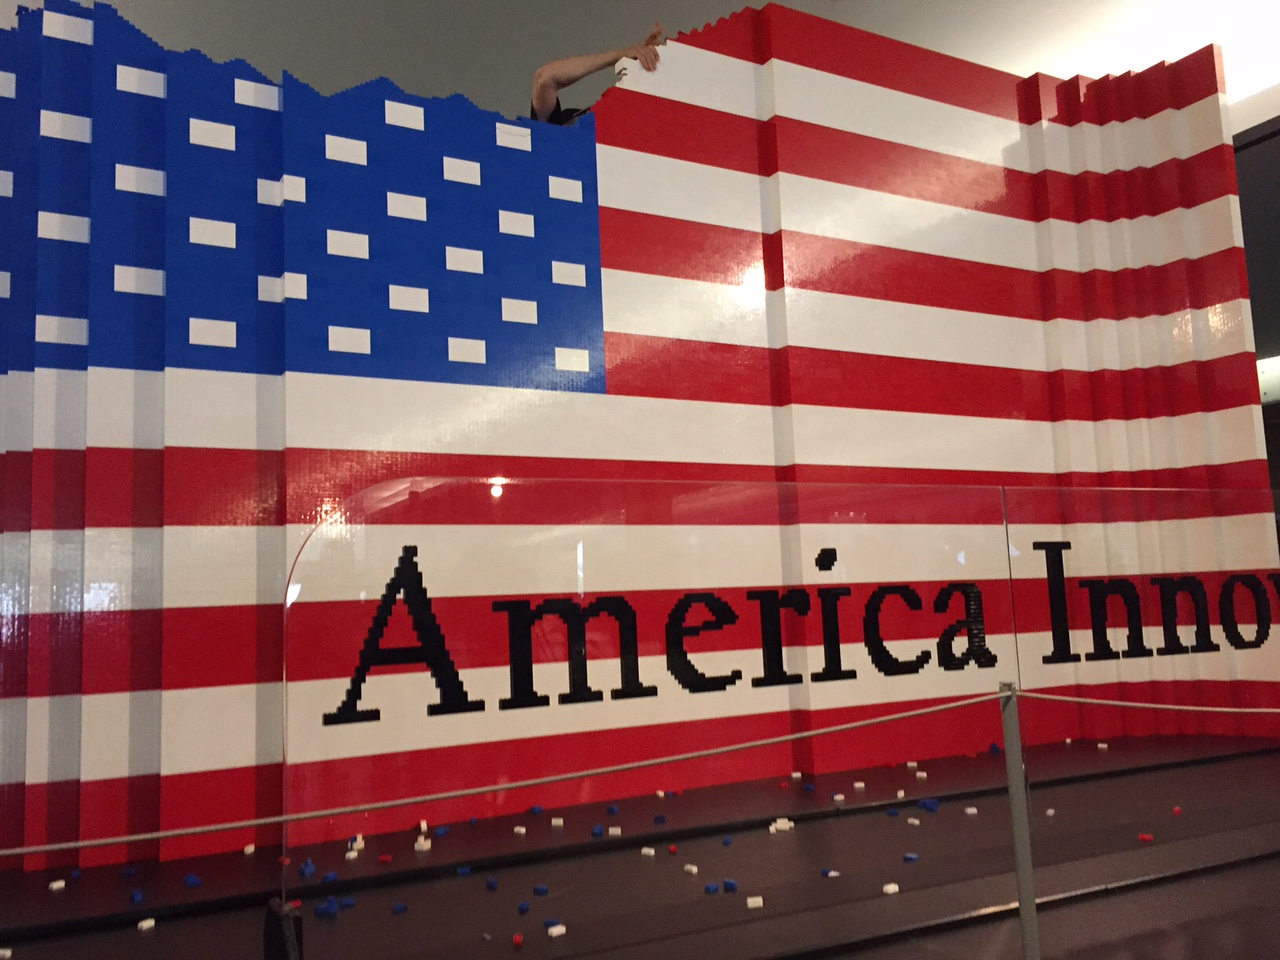 Gigantic Lego American flag built at Smithsonian